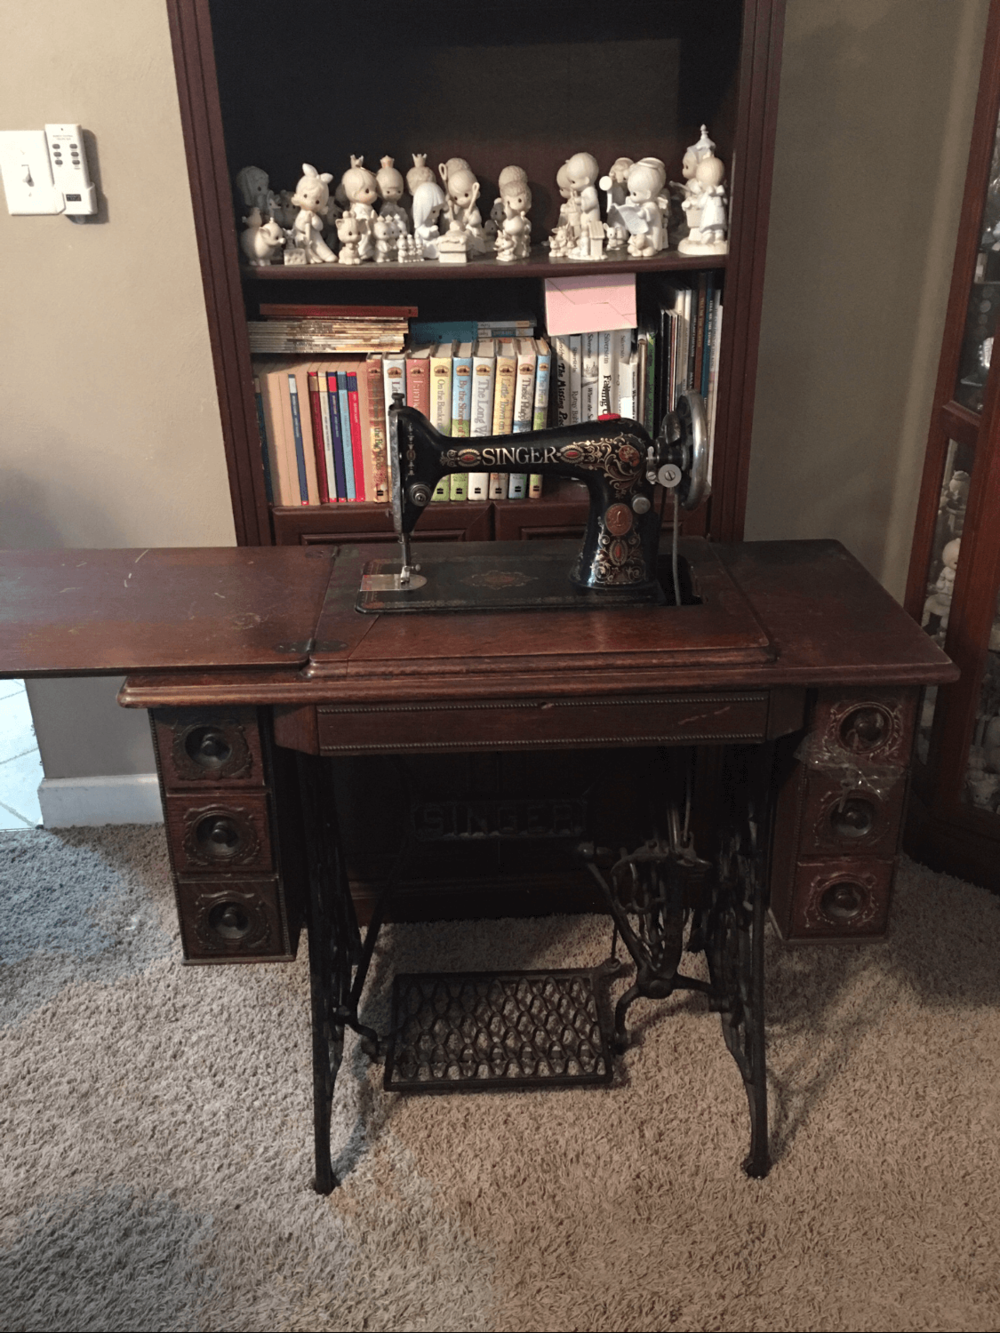 98 year old Singer pedal sewing machine